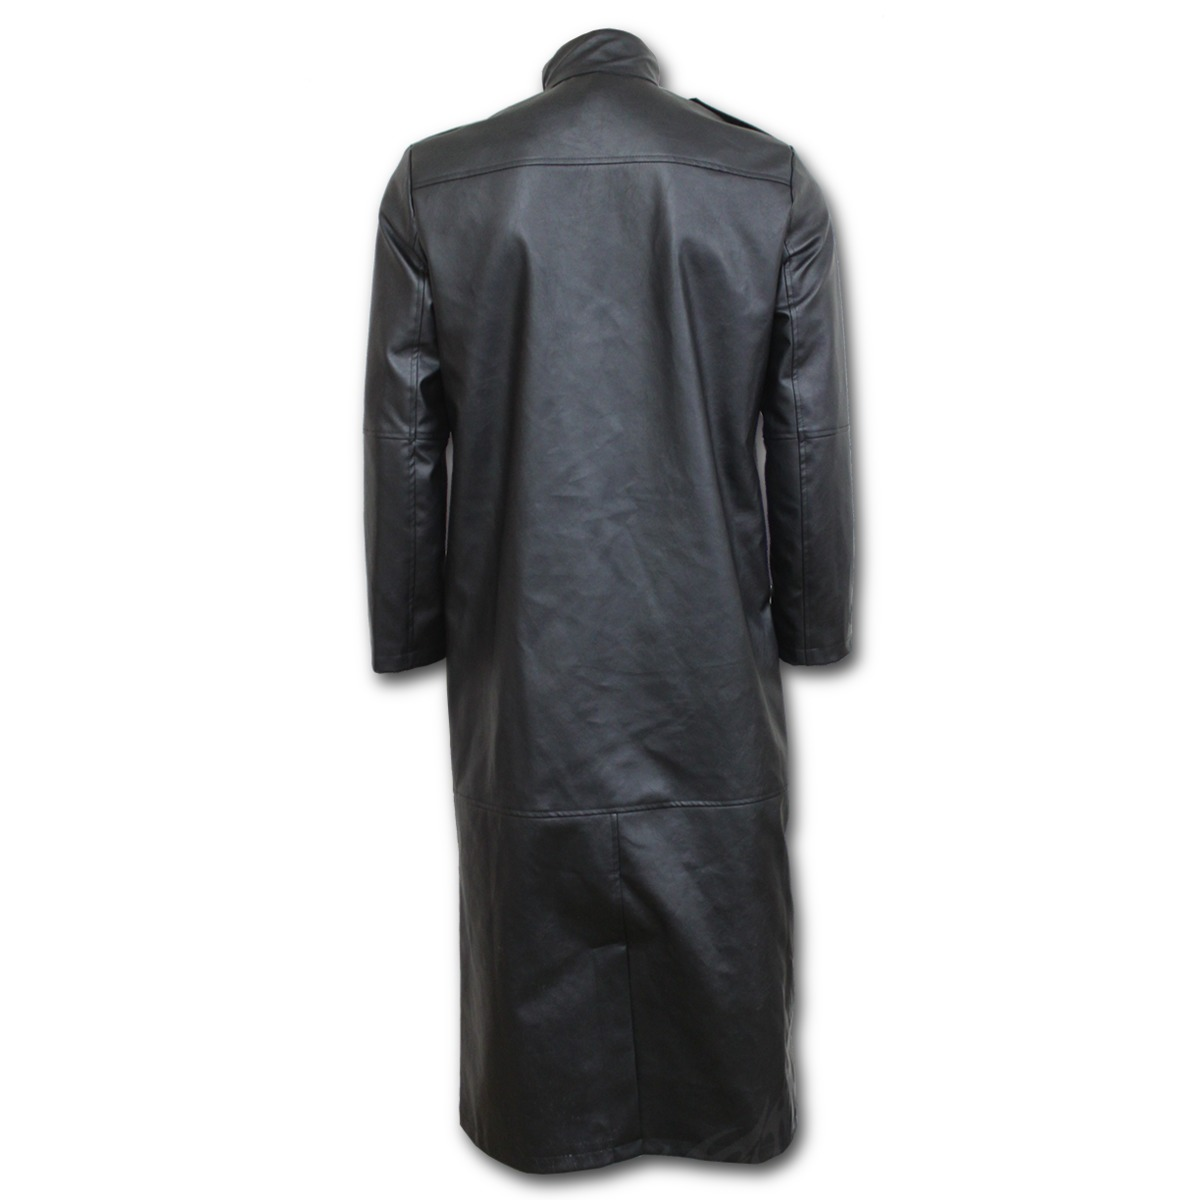 rebelsmarket_gothic_trench_coat_pu_leather_with_full_zip_jackets_3.jpg